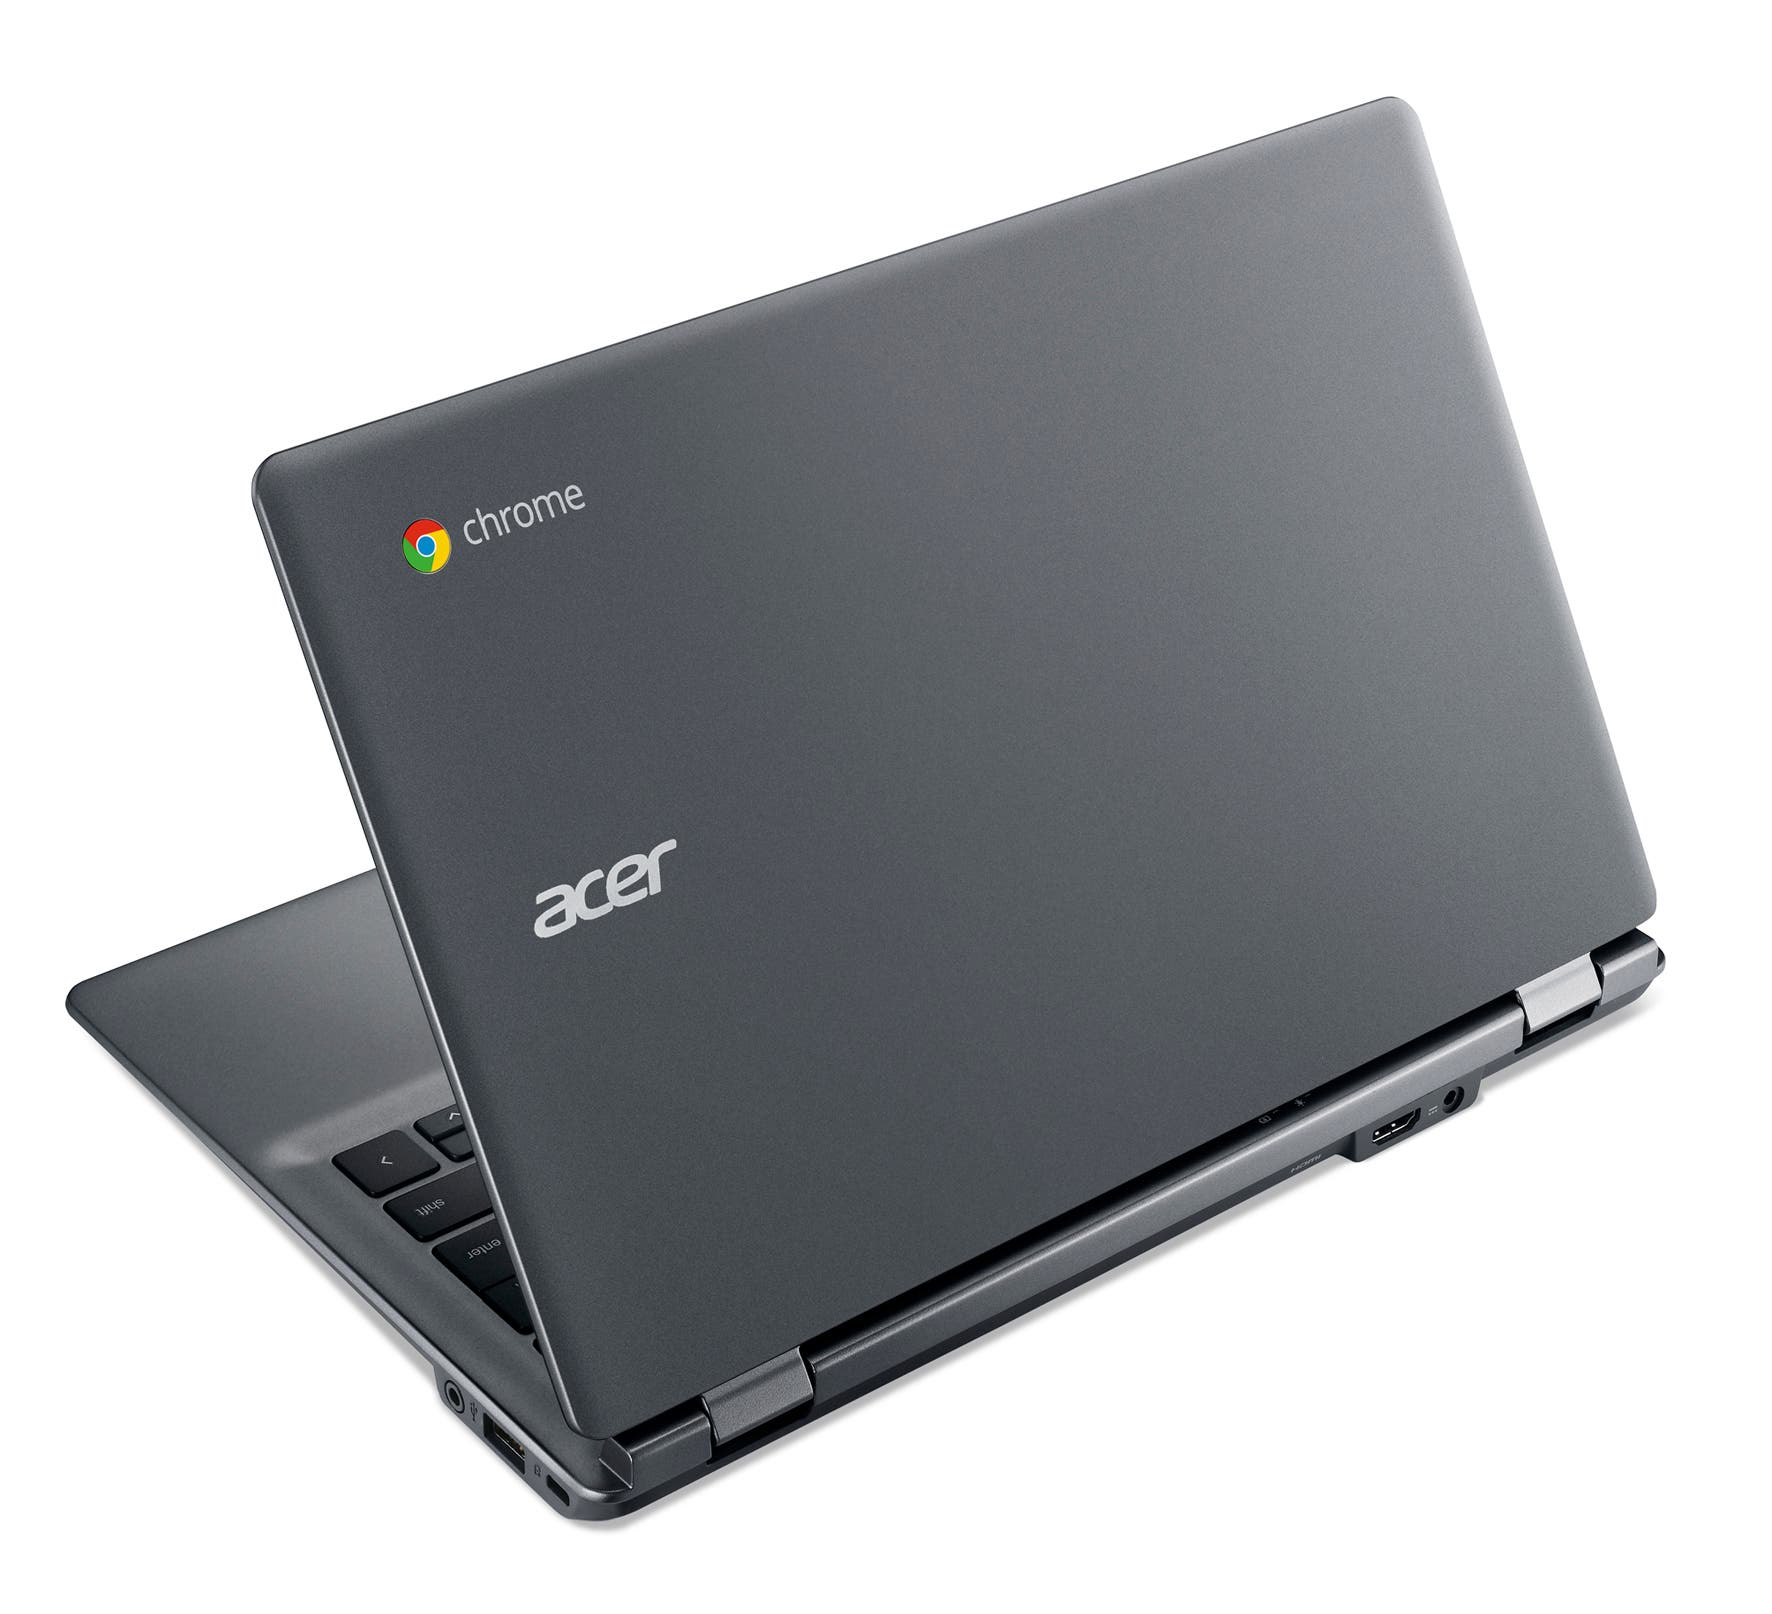 Acer plant 11,6 Zoll großes 2-in-1 Chromebook für 2015